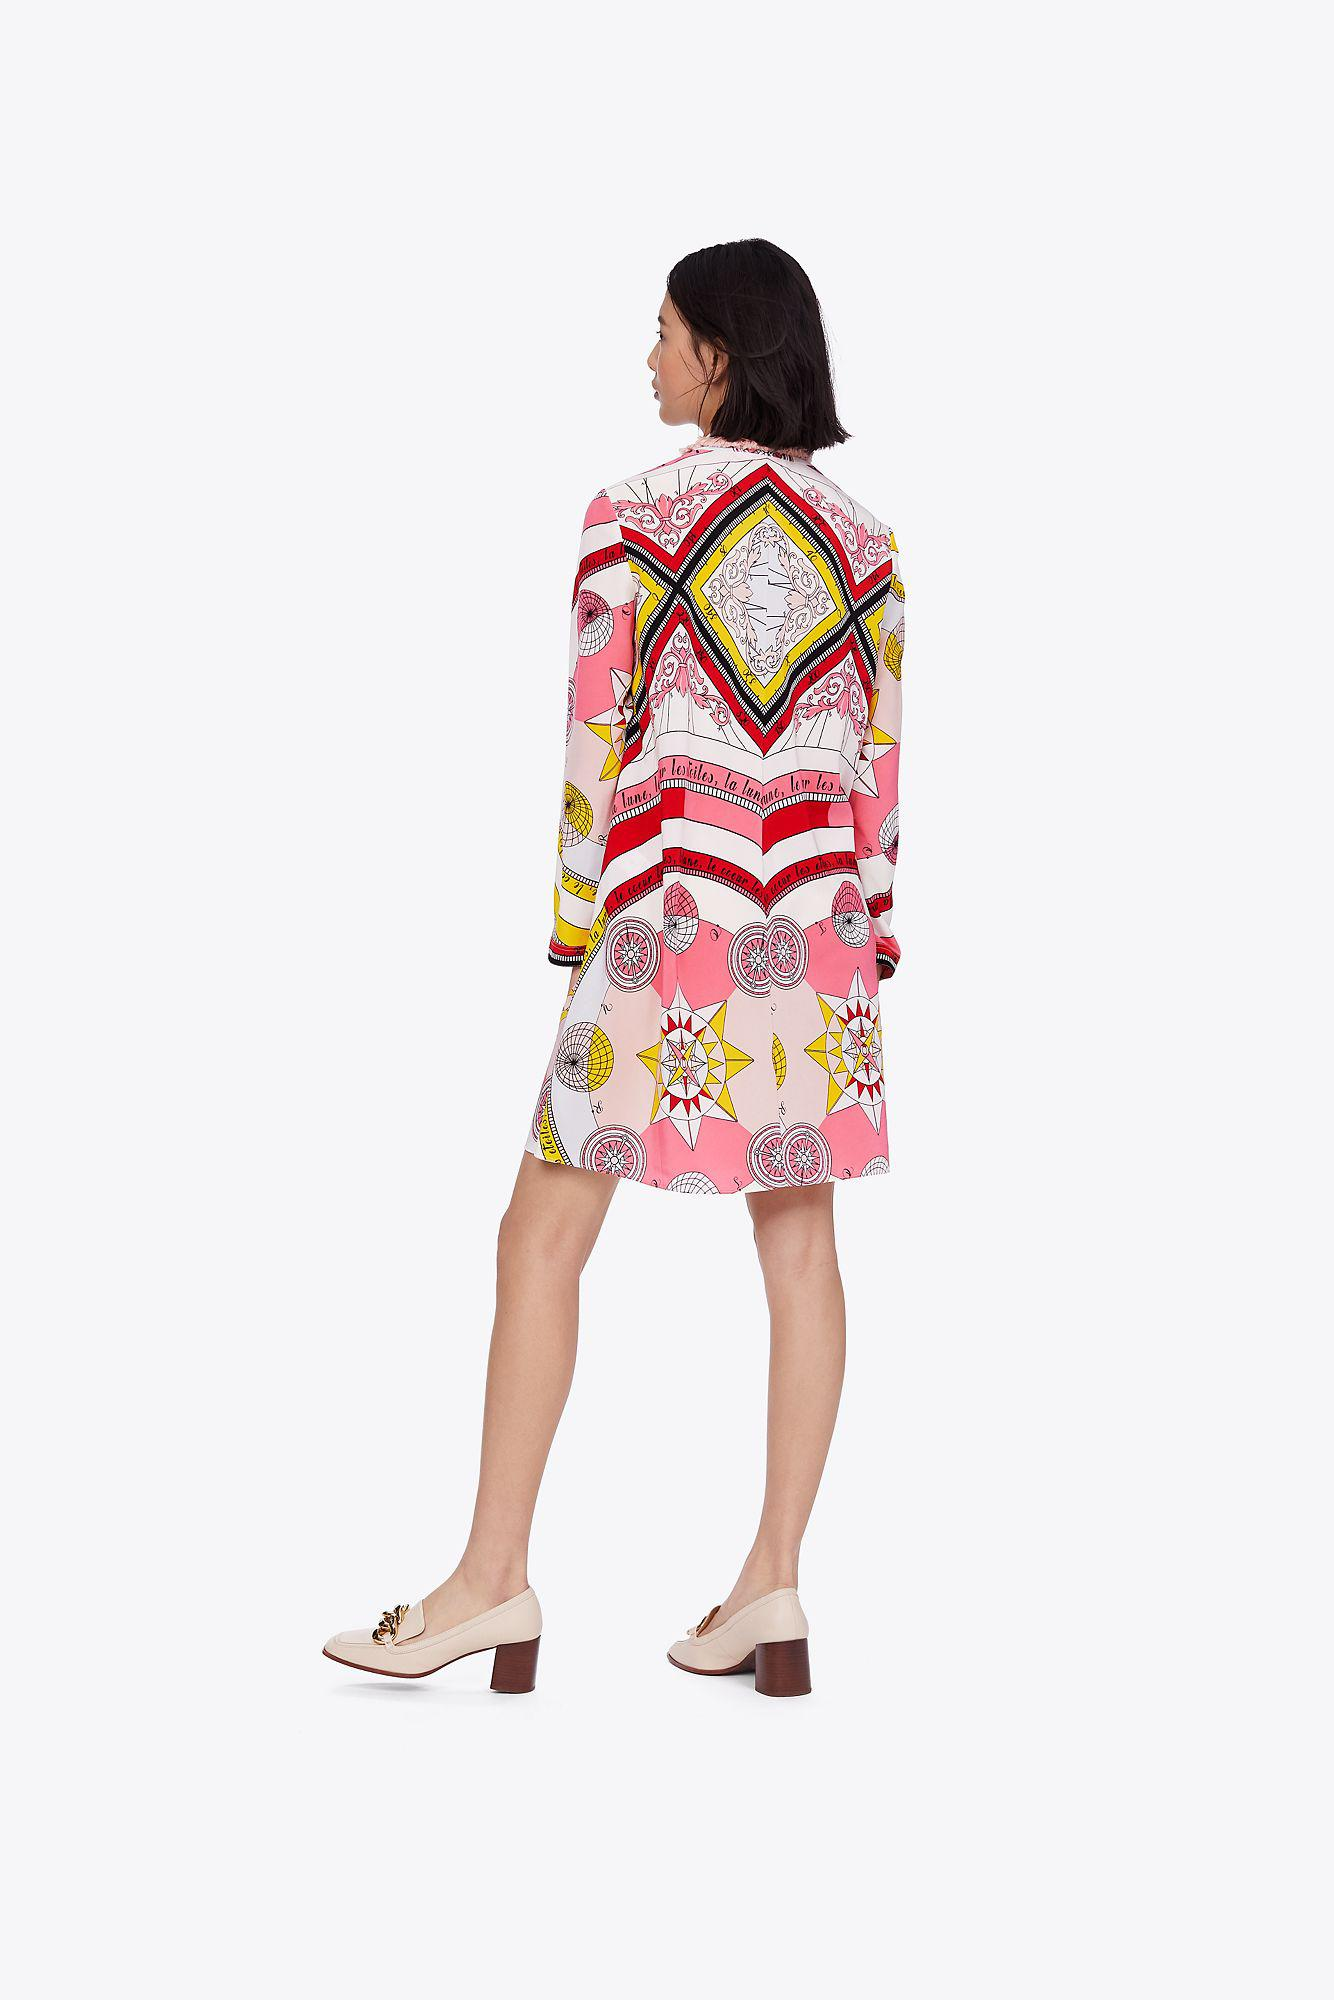 ed7b2e8d87e Tory Burch - Pink Printed Tie Dress - Lyst. View fullscreen